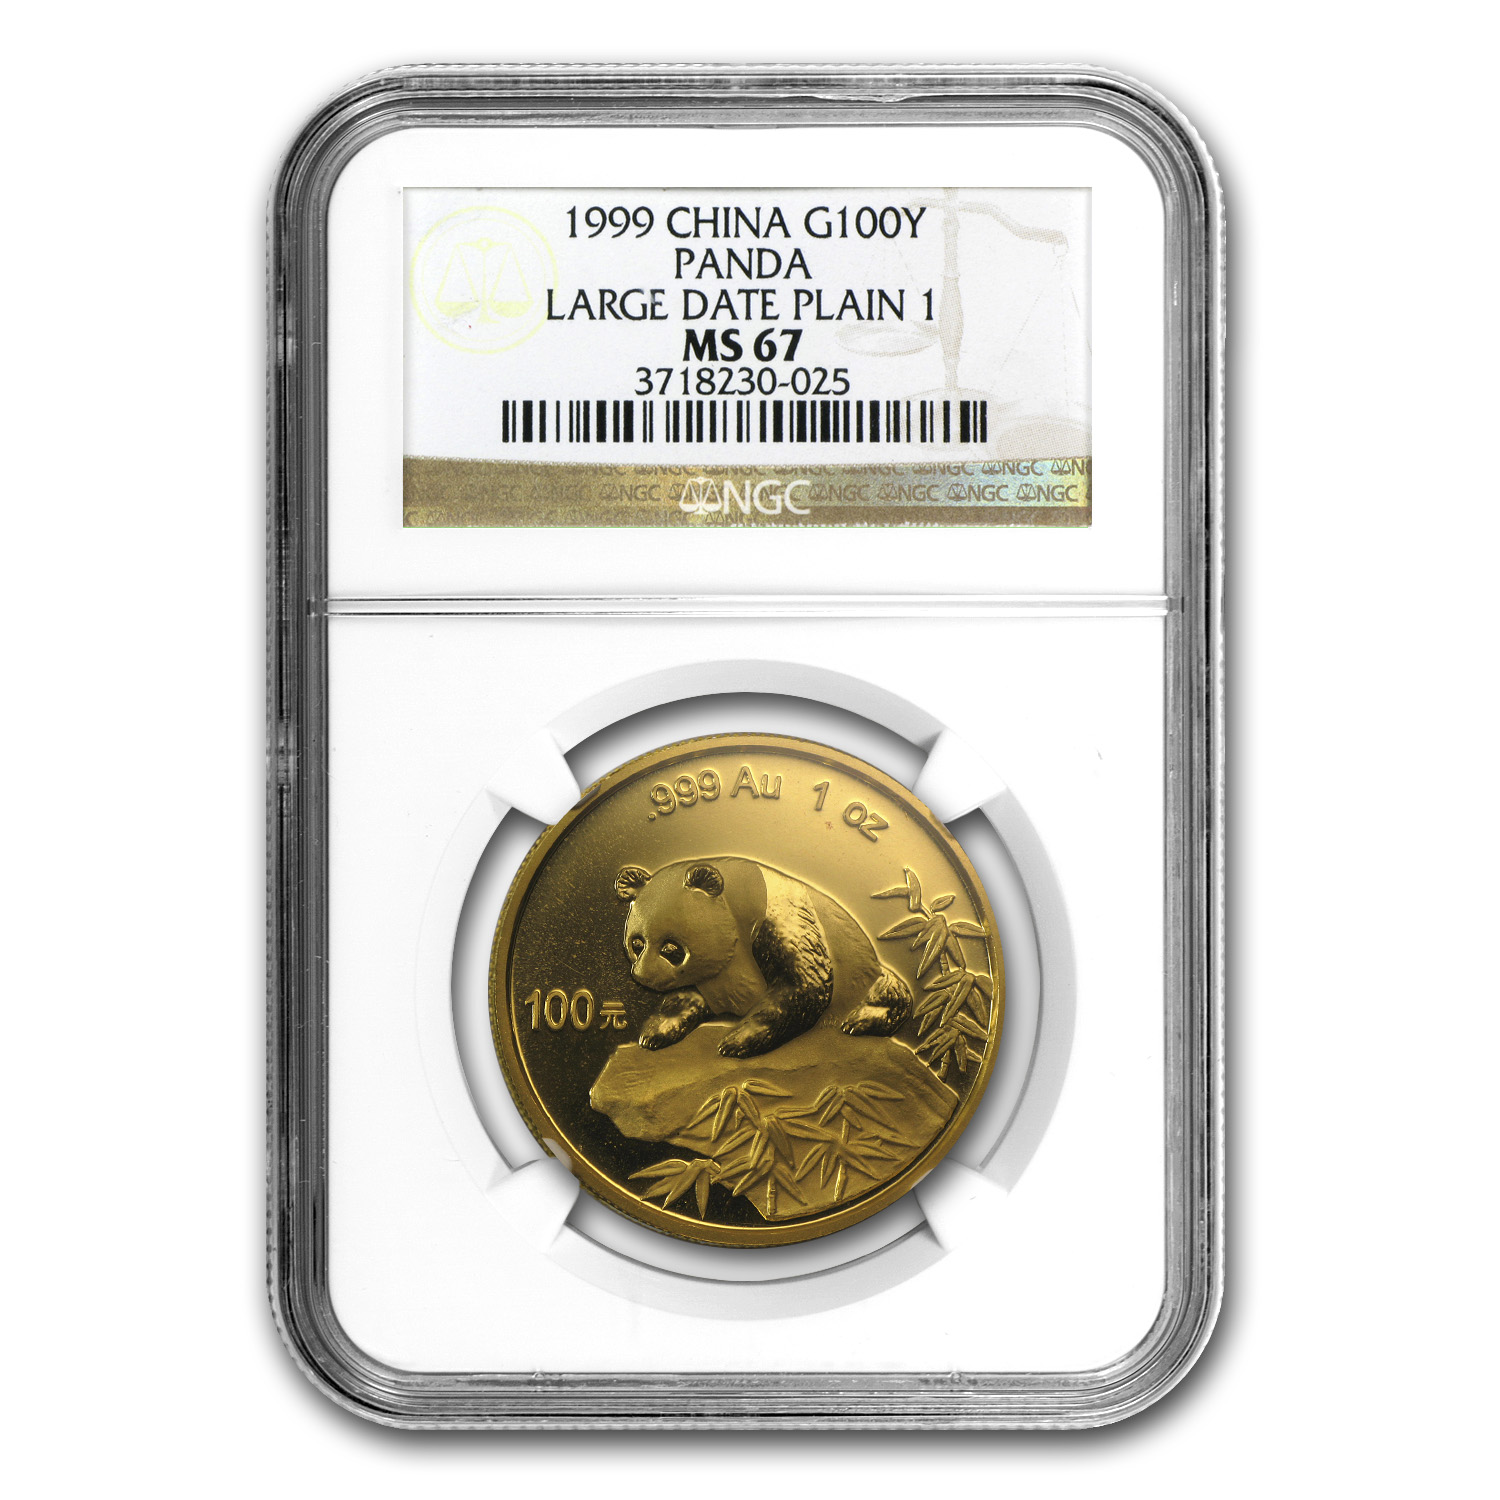 1999 China 1 oz Gold Panda Large Date/Plain 1 MS-67 NGC